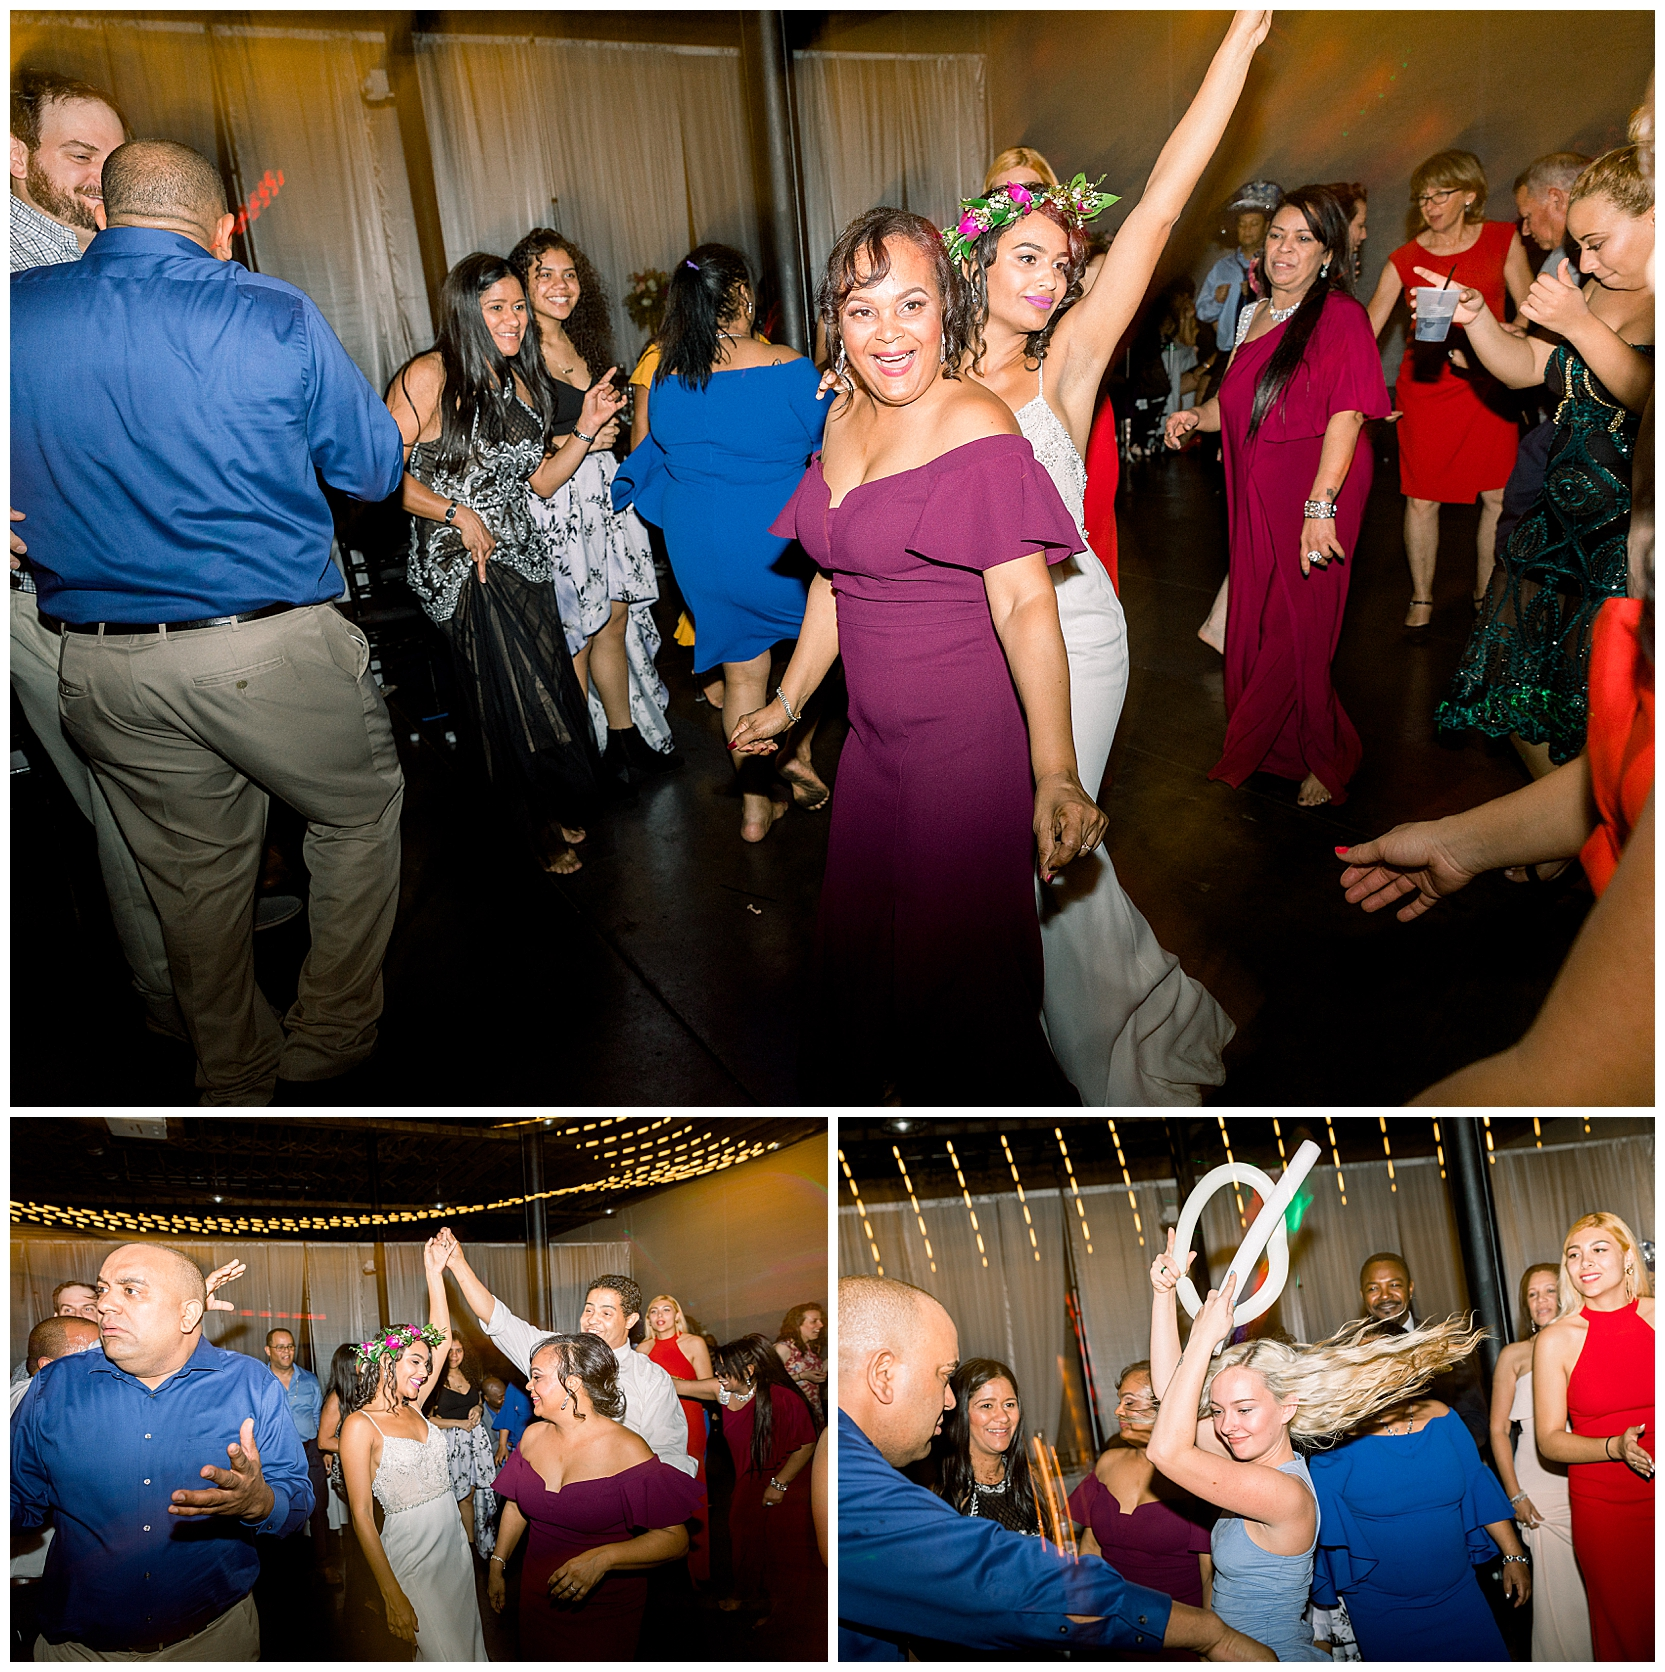 jessicafredericks_lakeland_tampa_wedding_purple_crazy hour_0102.jpg